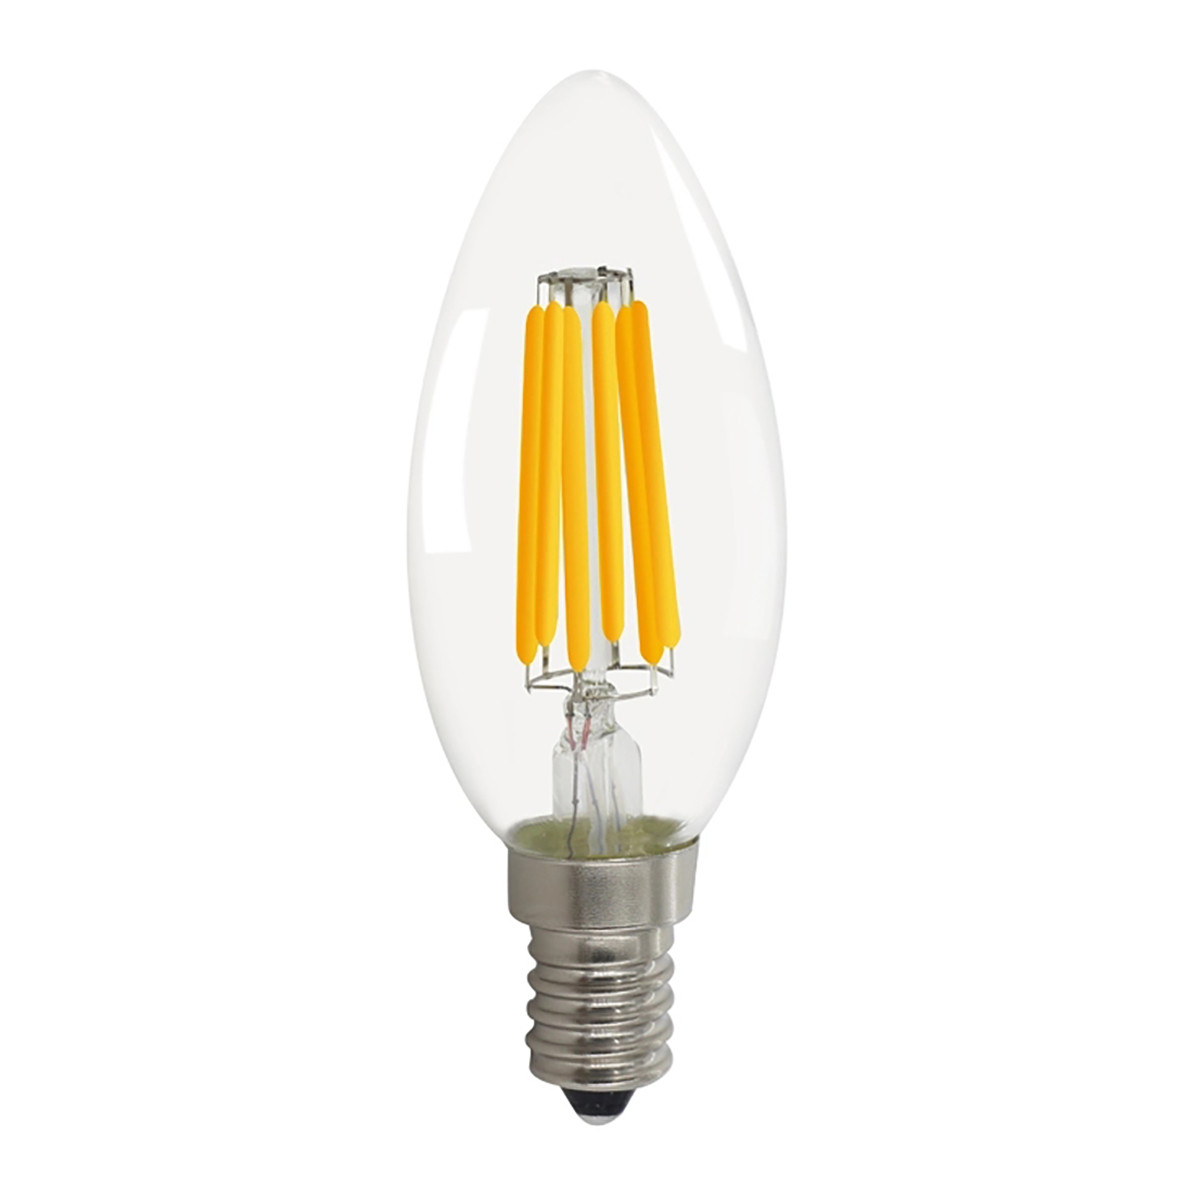 6W Filament LED Candle Light Bulb Light C35 Chandelier Bulb with E14 Base 60W Equivalent Halogen Replacement